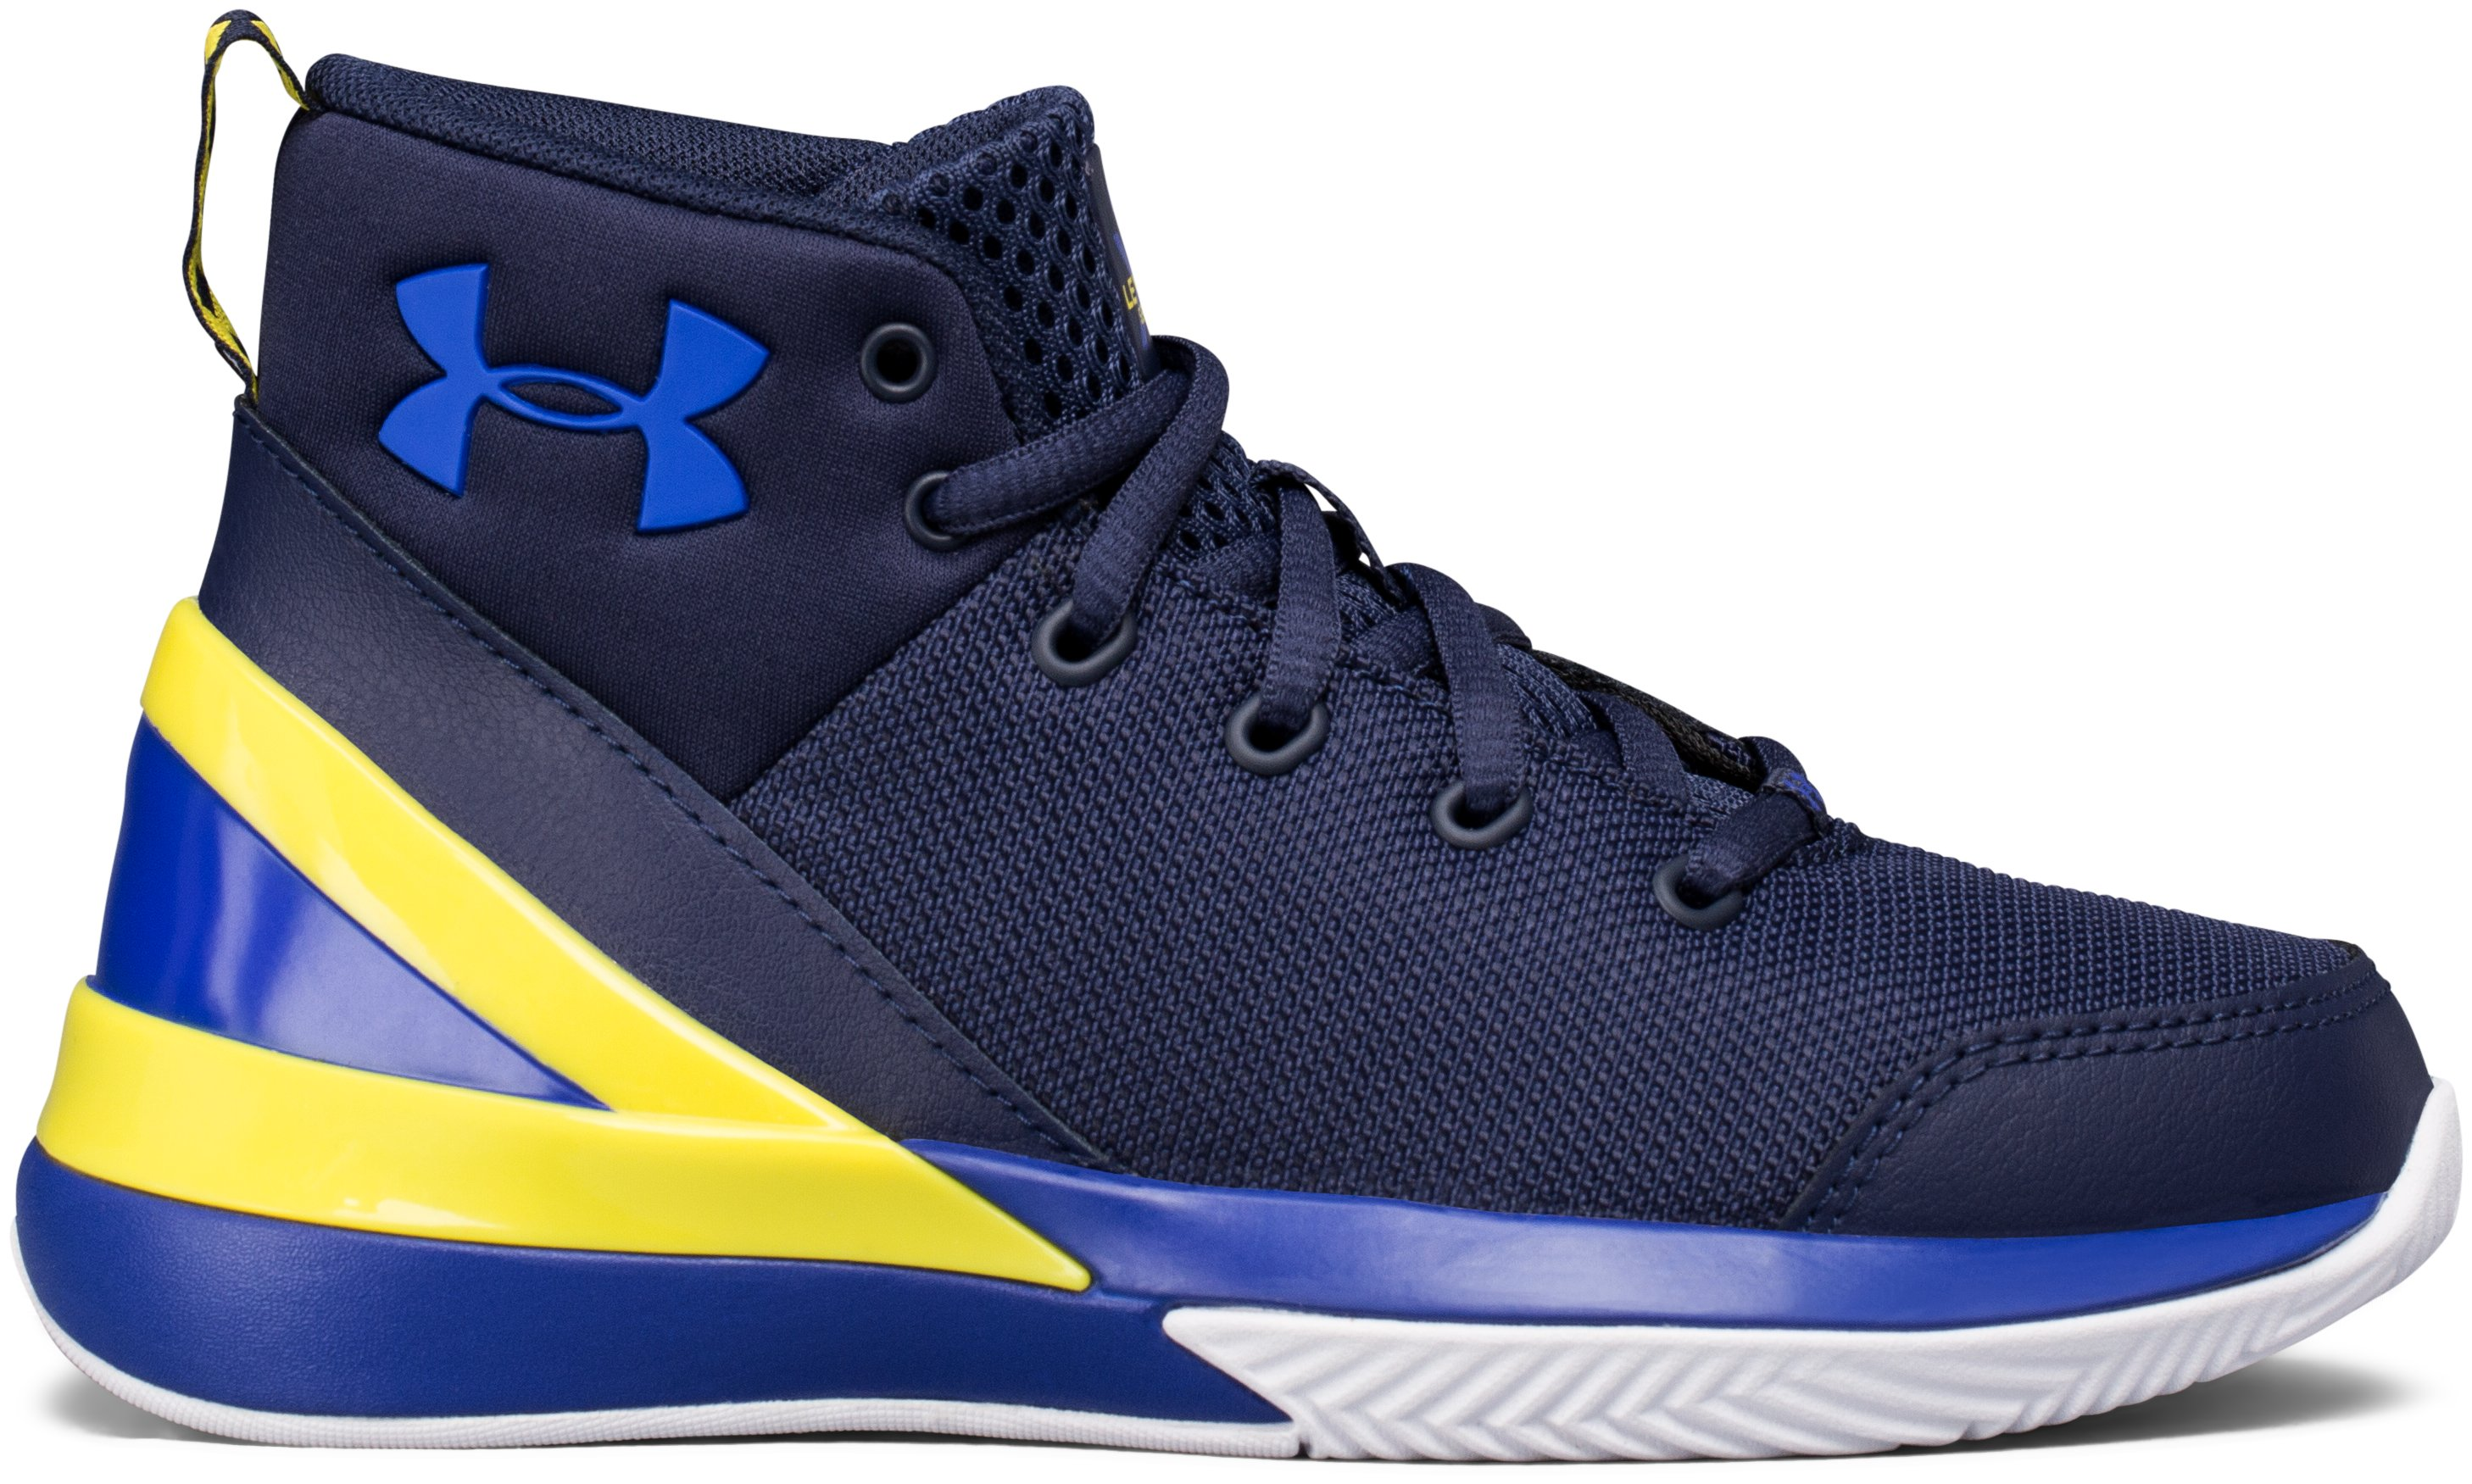 Boys' Pre-School UA X Level Ninja Basketball Shoes, Midnight Navy